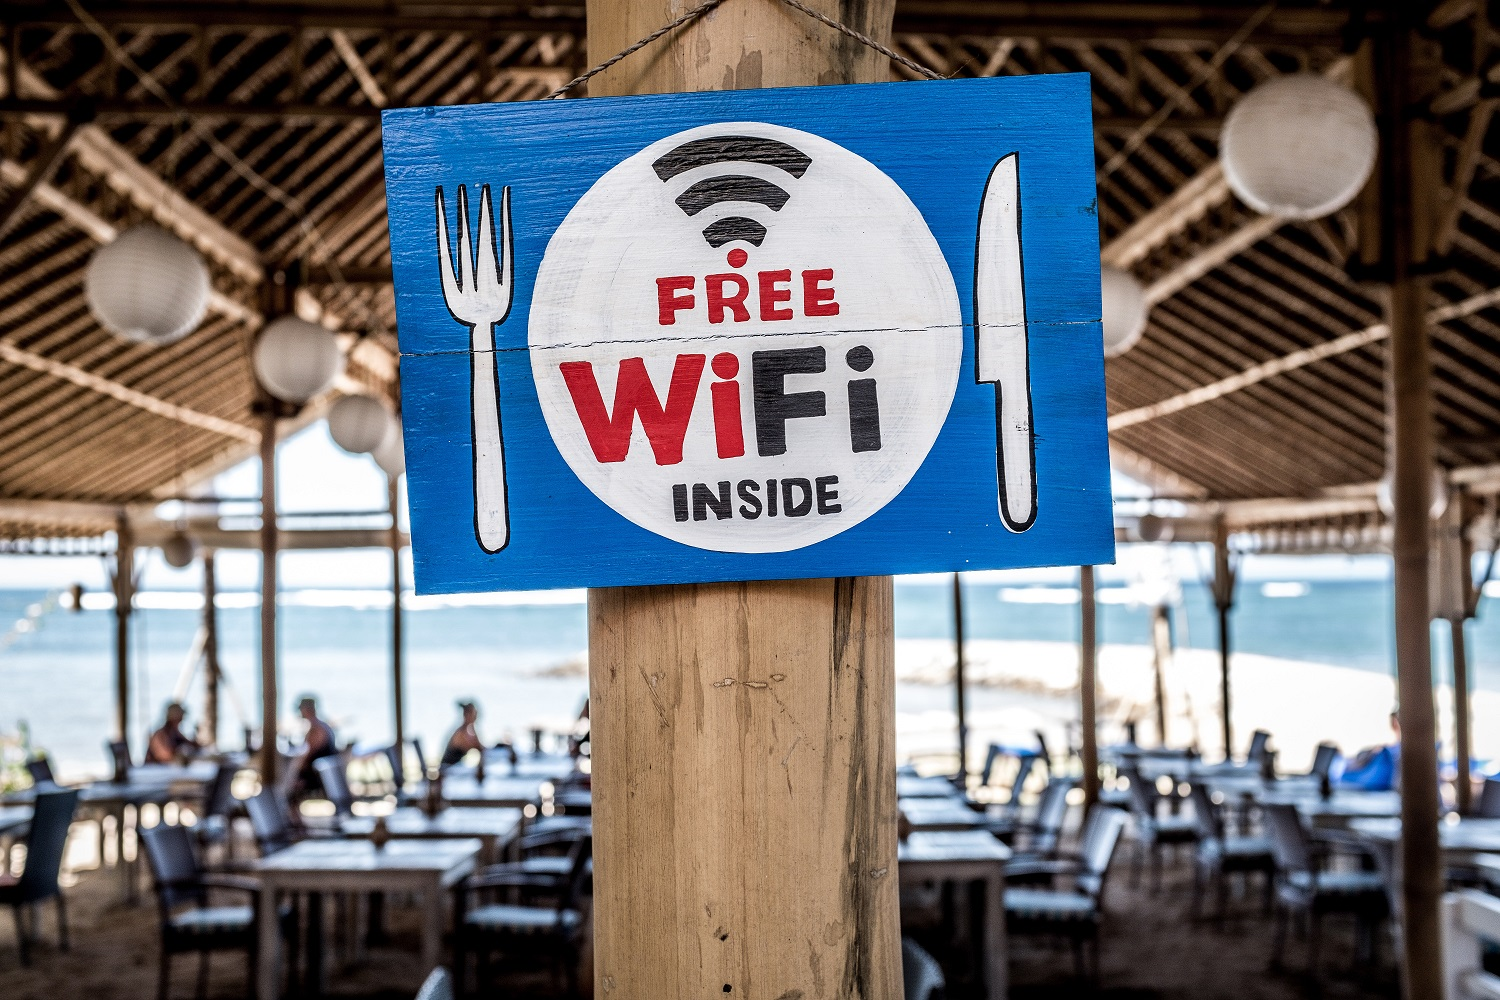 WiFi in the IoT world